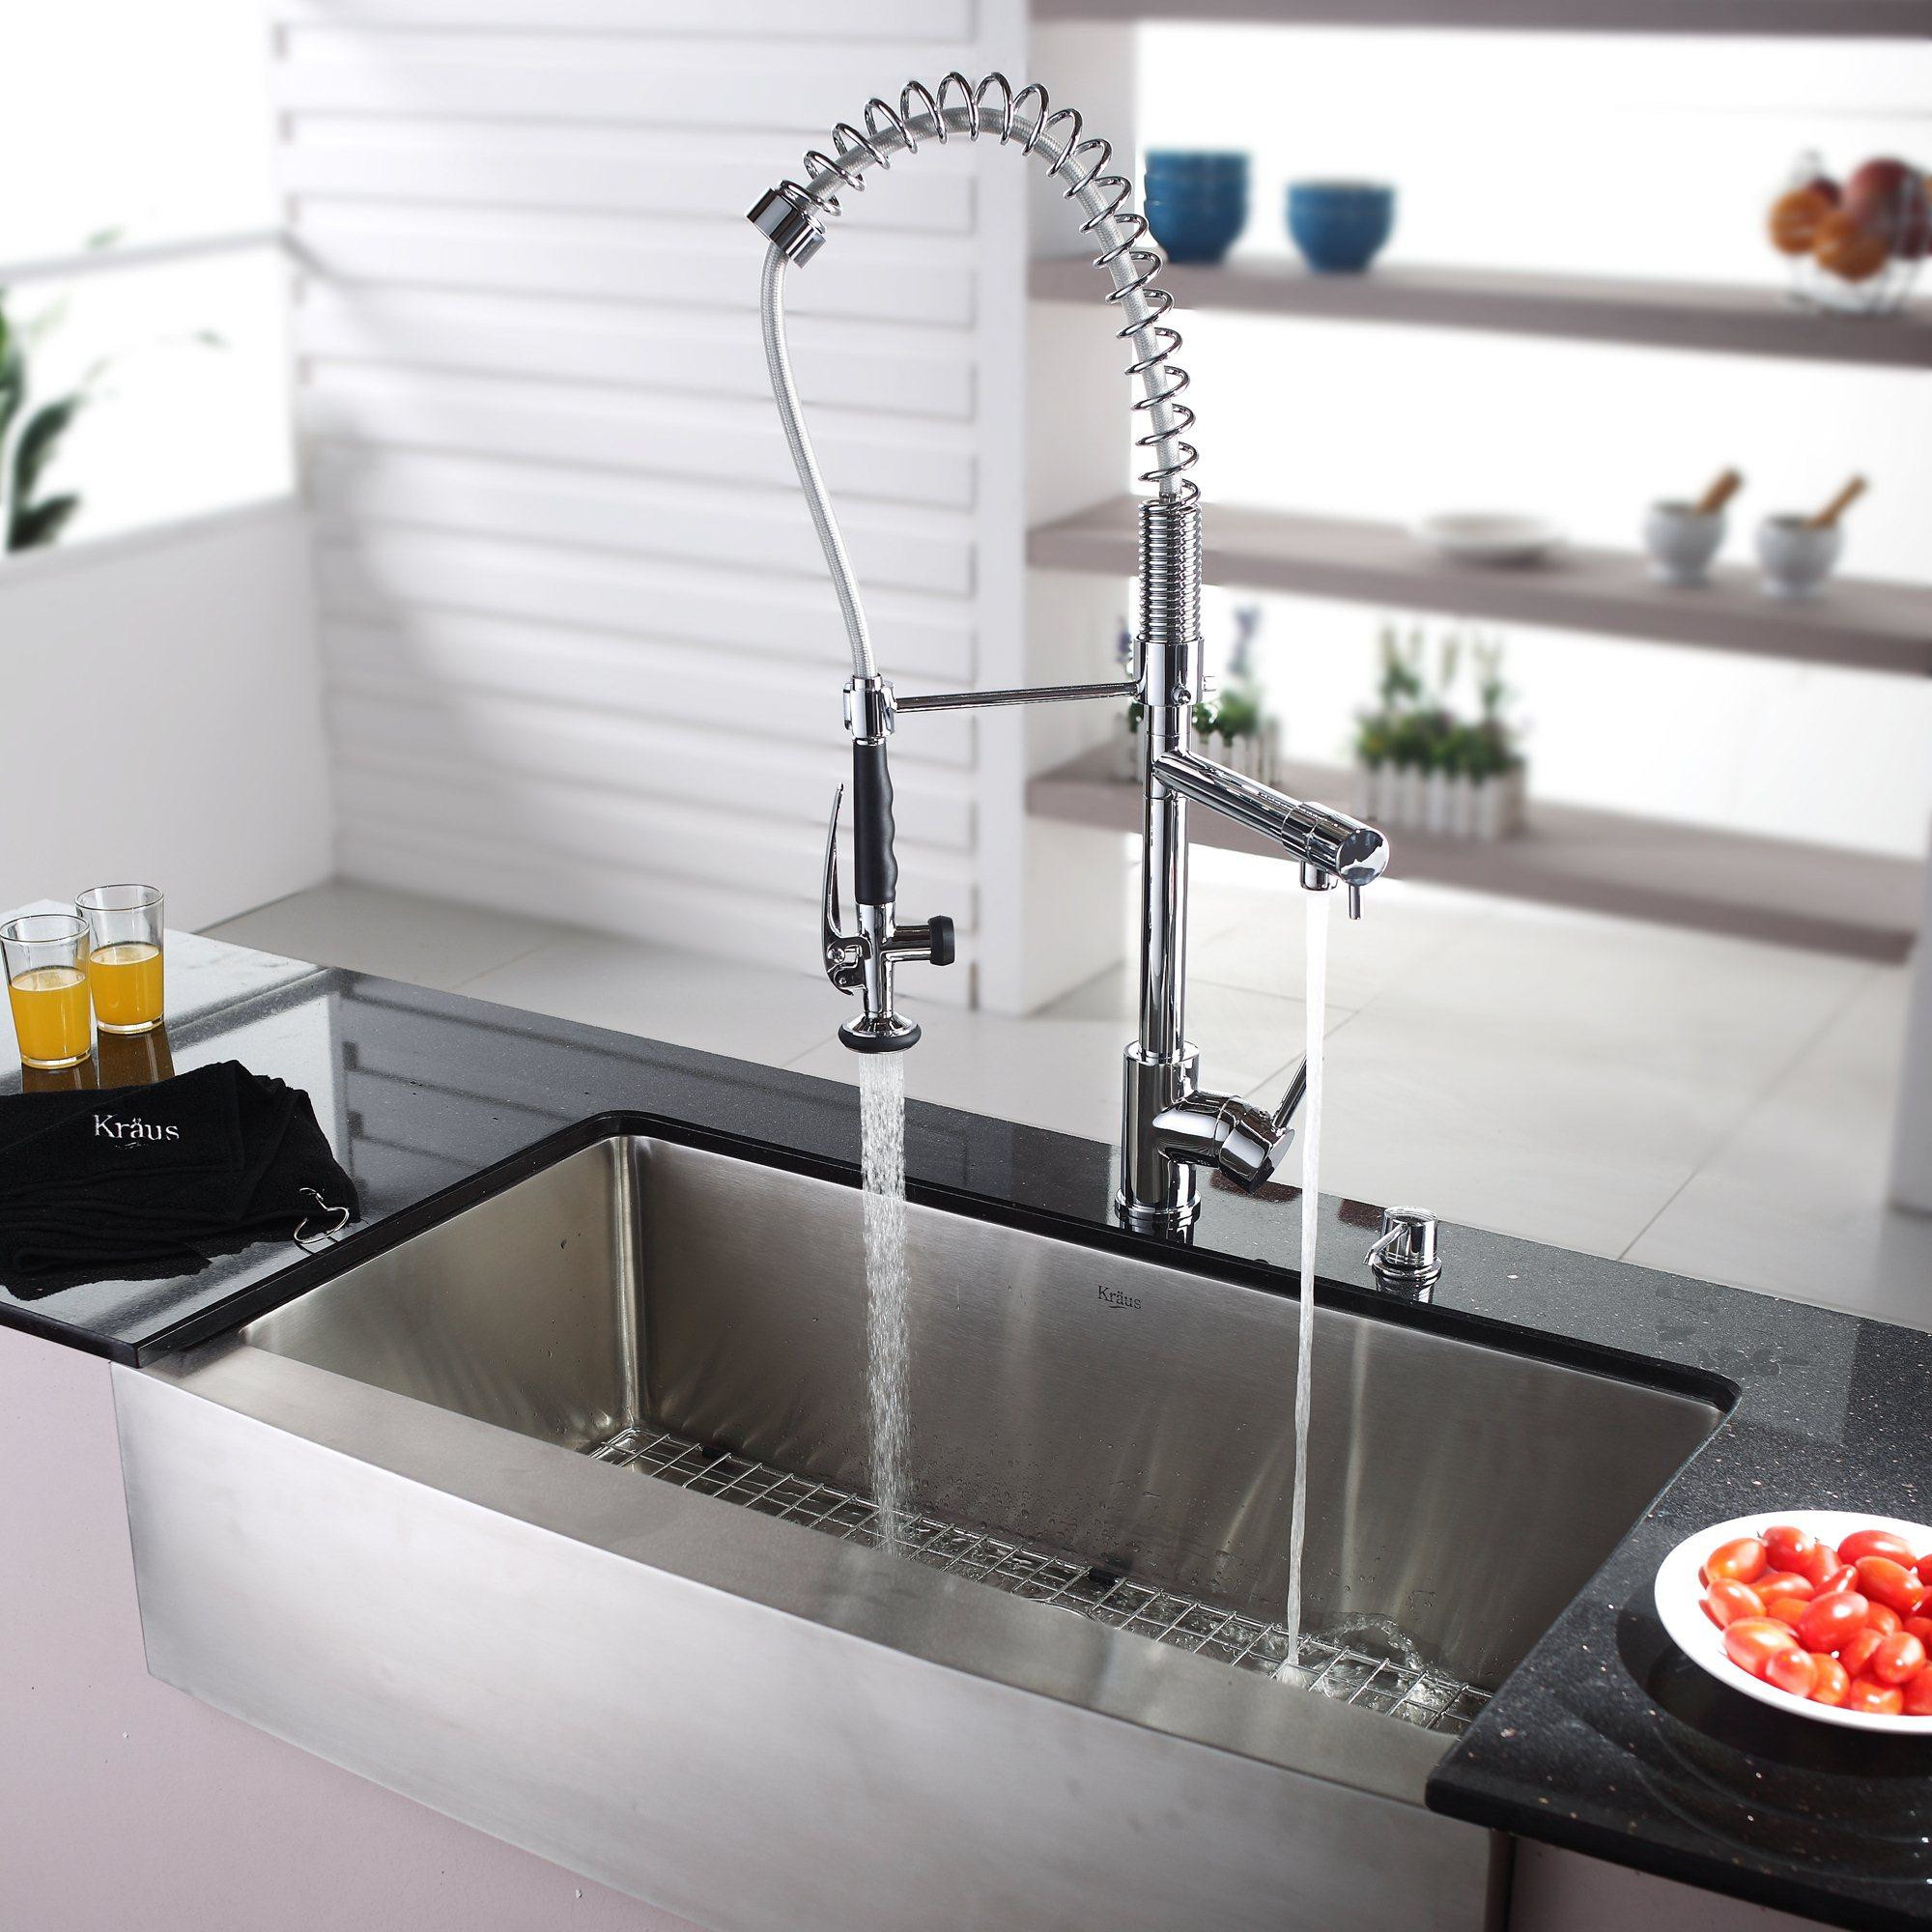 top modern kitchen sink design to fashion your cooking area